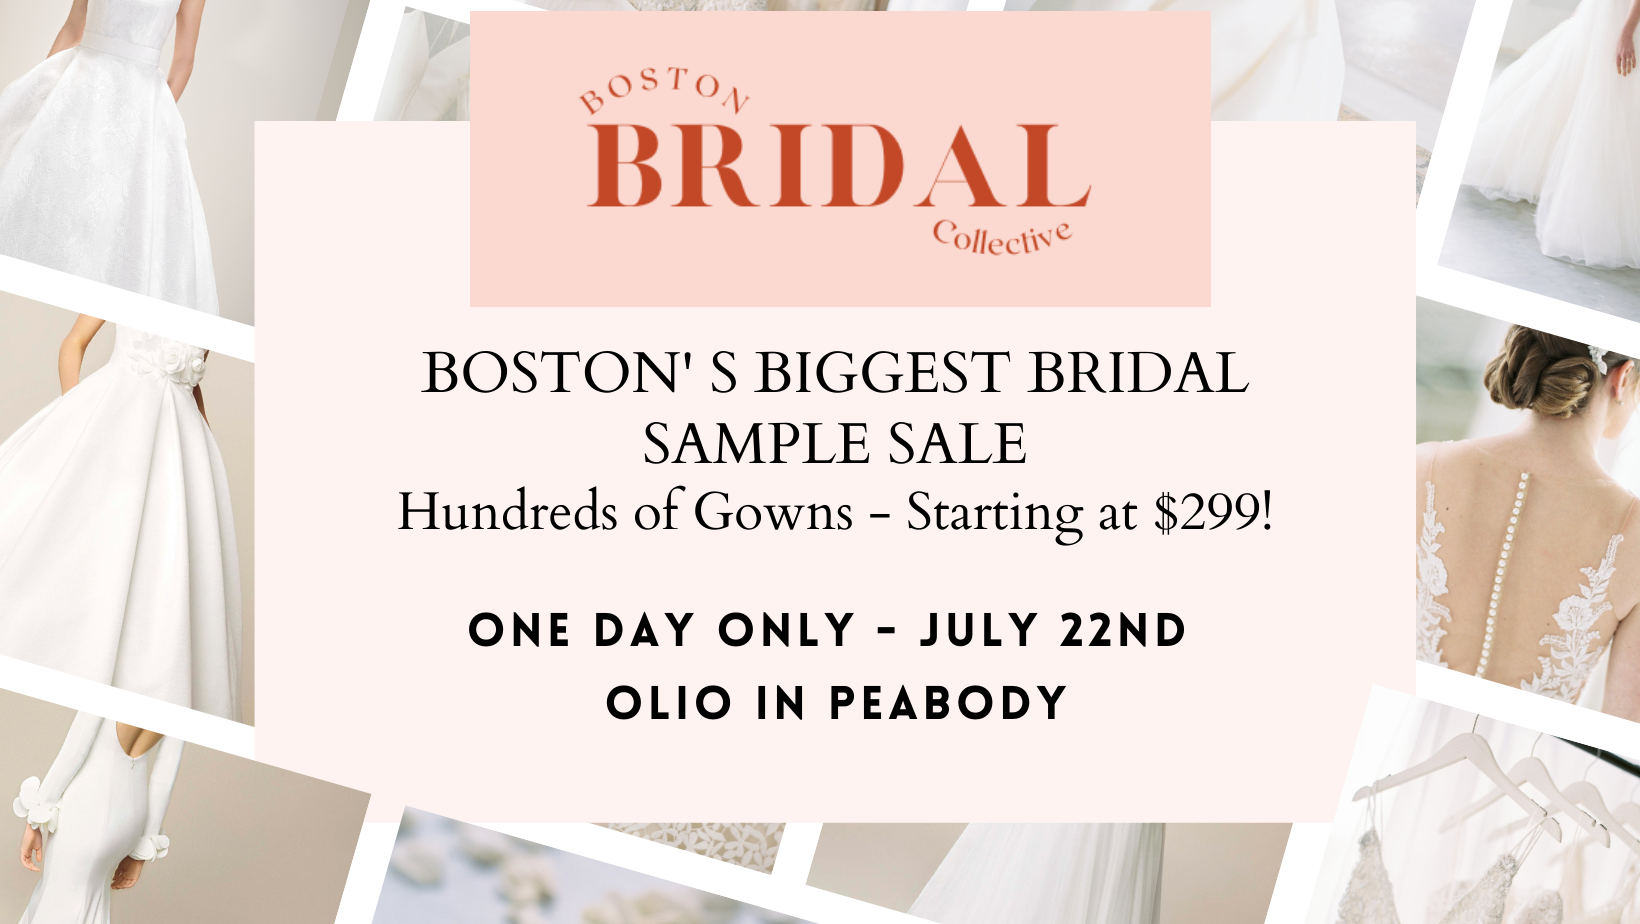 ✨The Boston Bridal Collective hosts Boston's Biggest Bridal Sale. Designer Wedding Gowns starting at $299! ✨ When: July 22, 2021 - One Day Only and worth playing hooky for :) Where: Olio in Peabody MA